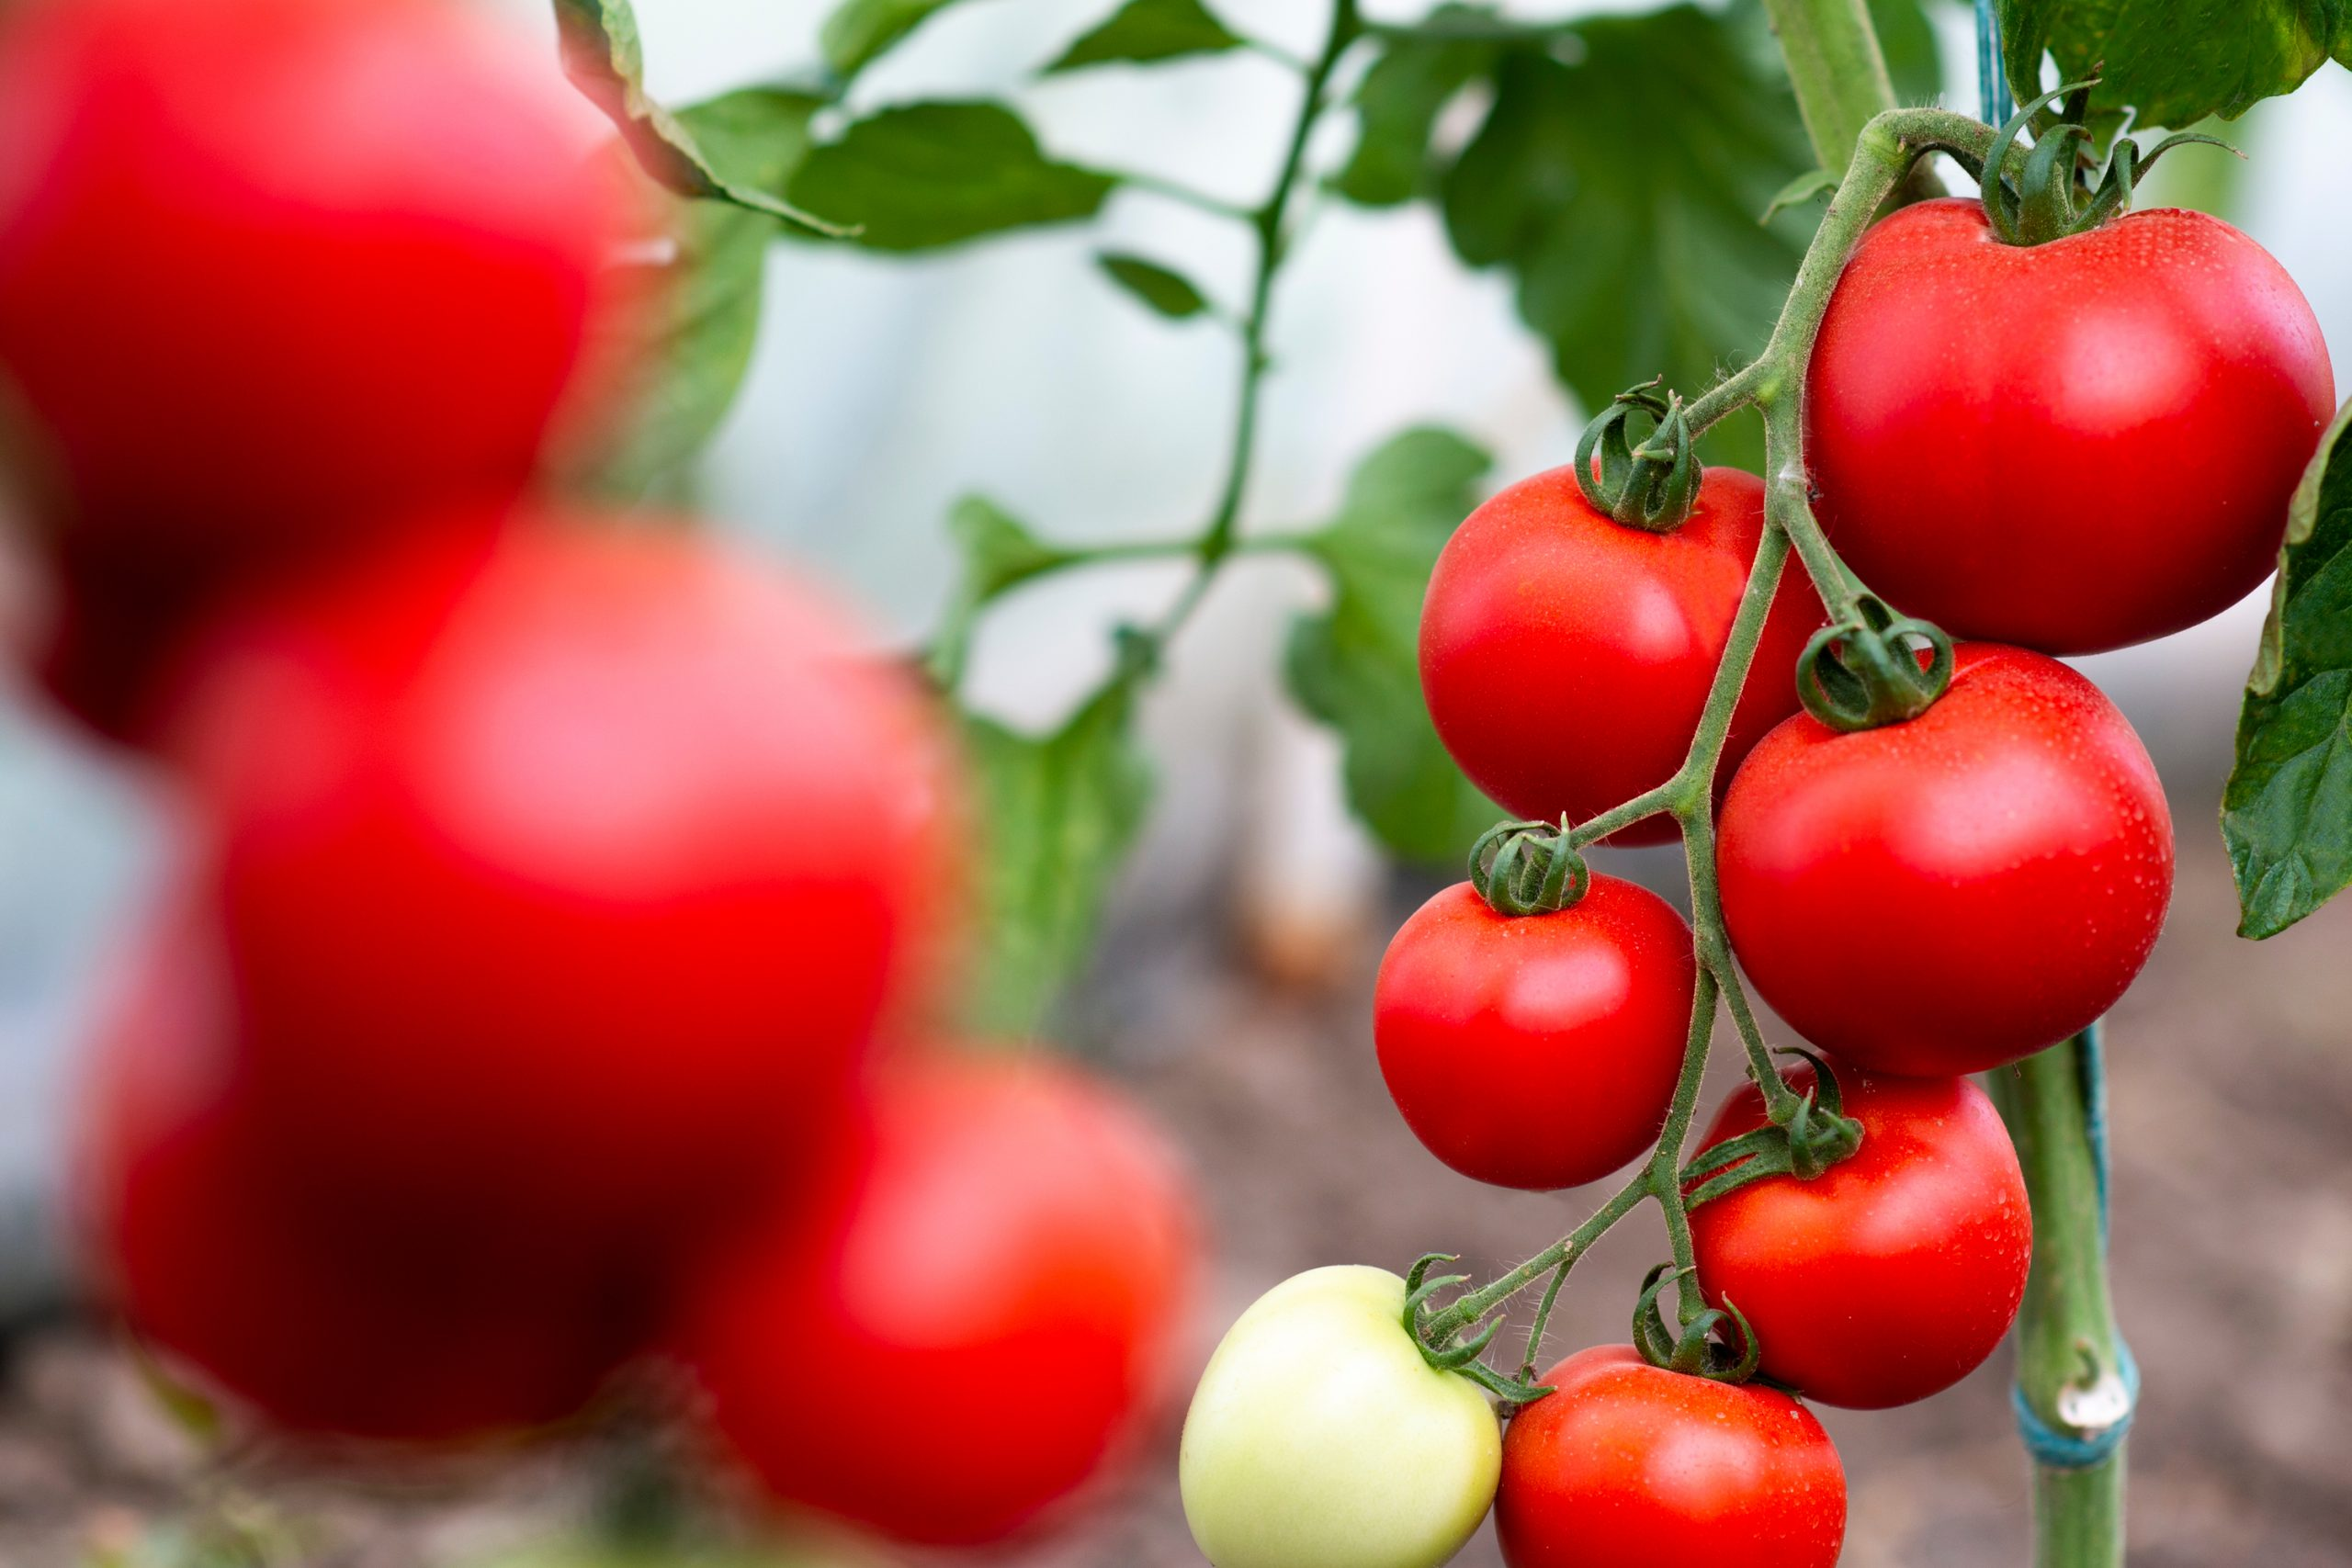 If you are short on garden space, or just want to add a little greenery somewhere else, try to grow your own upside down tomatoes. They are super easy to grow.